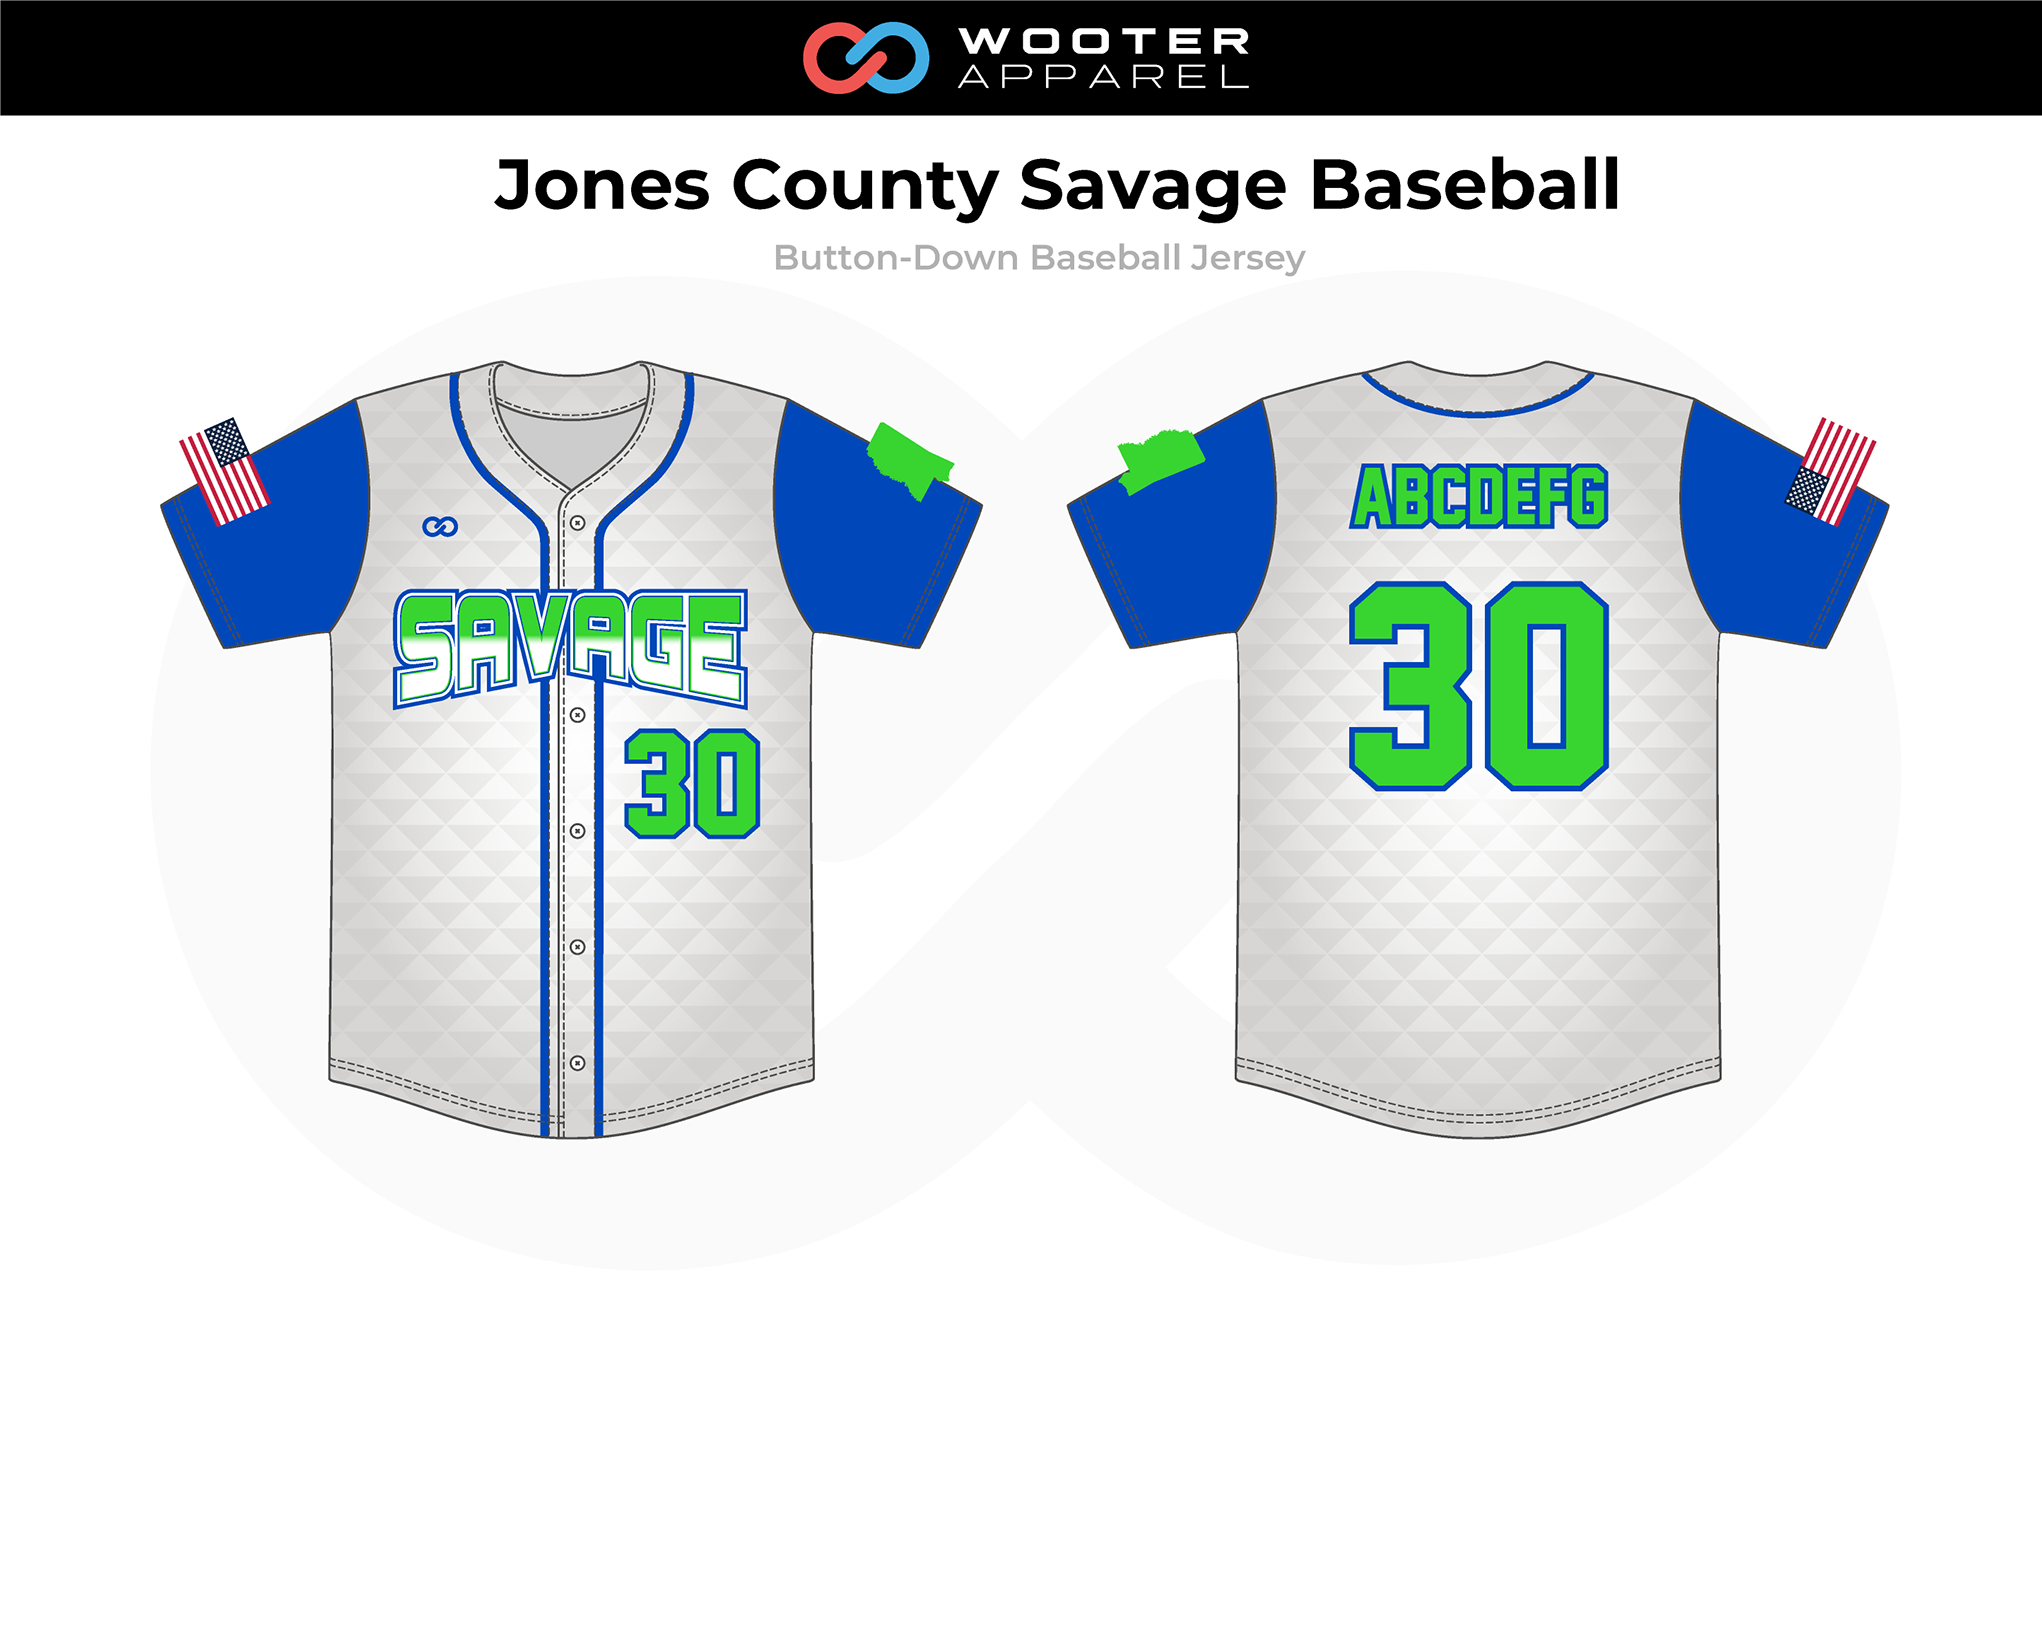 2019-01-15 Jones County Savage Baseball Button-Down Jersey (Home).png